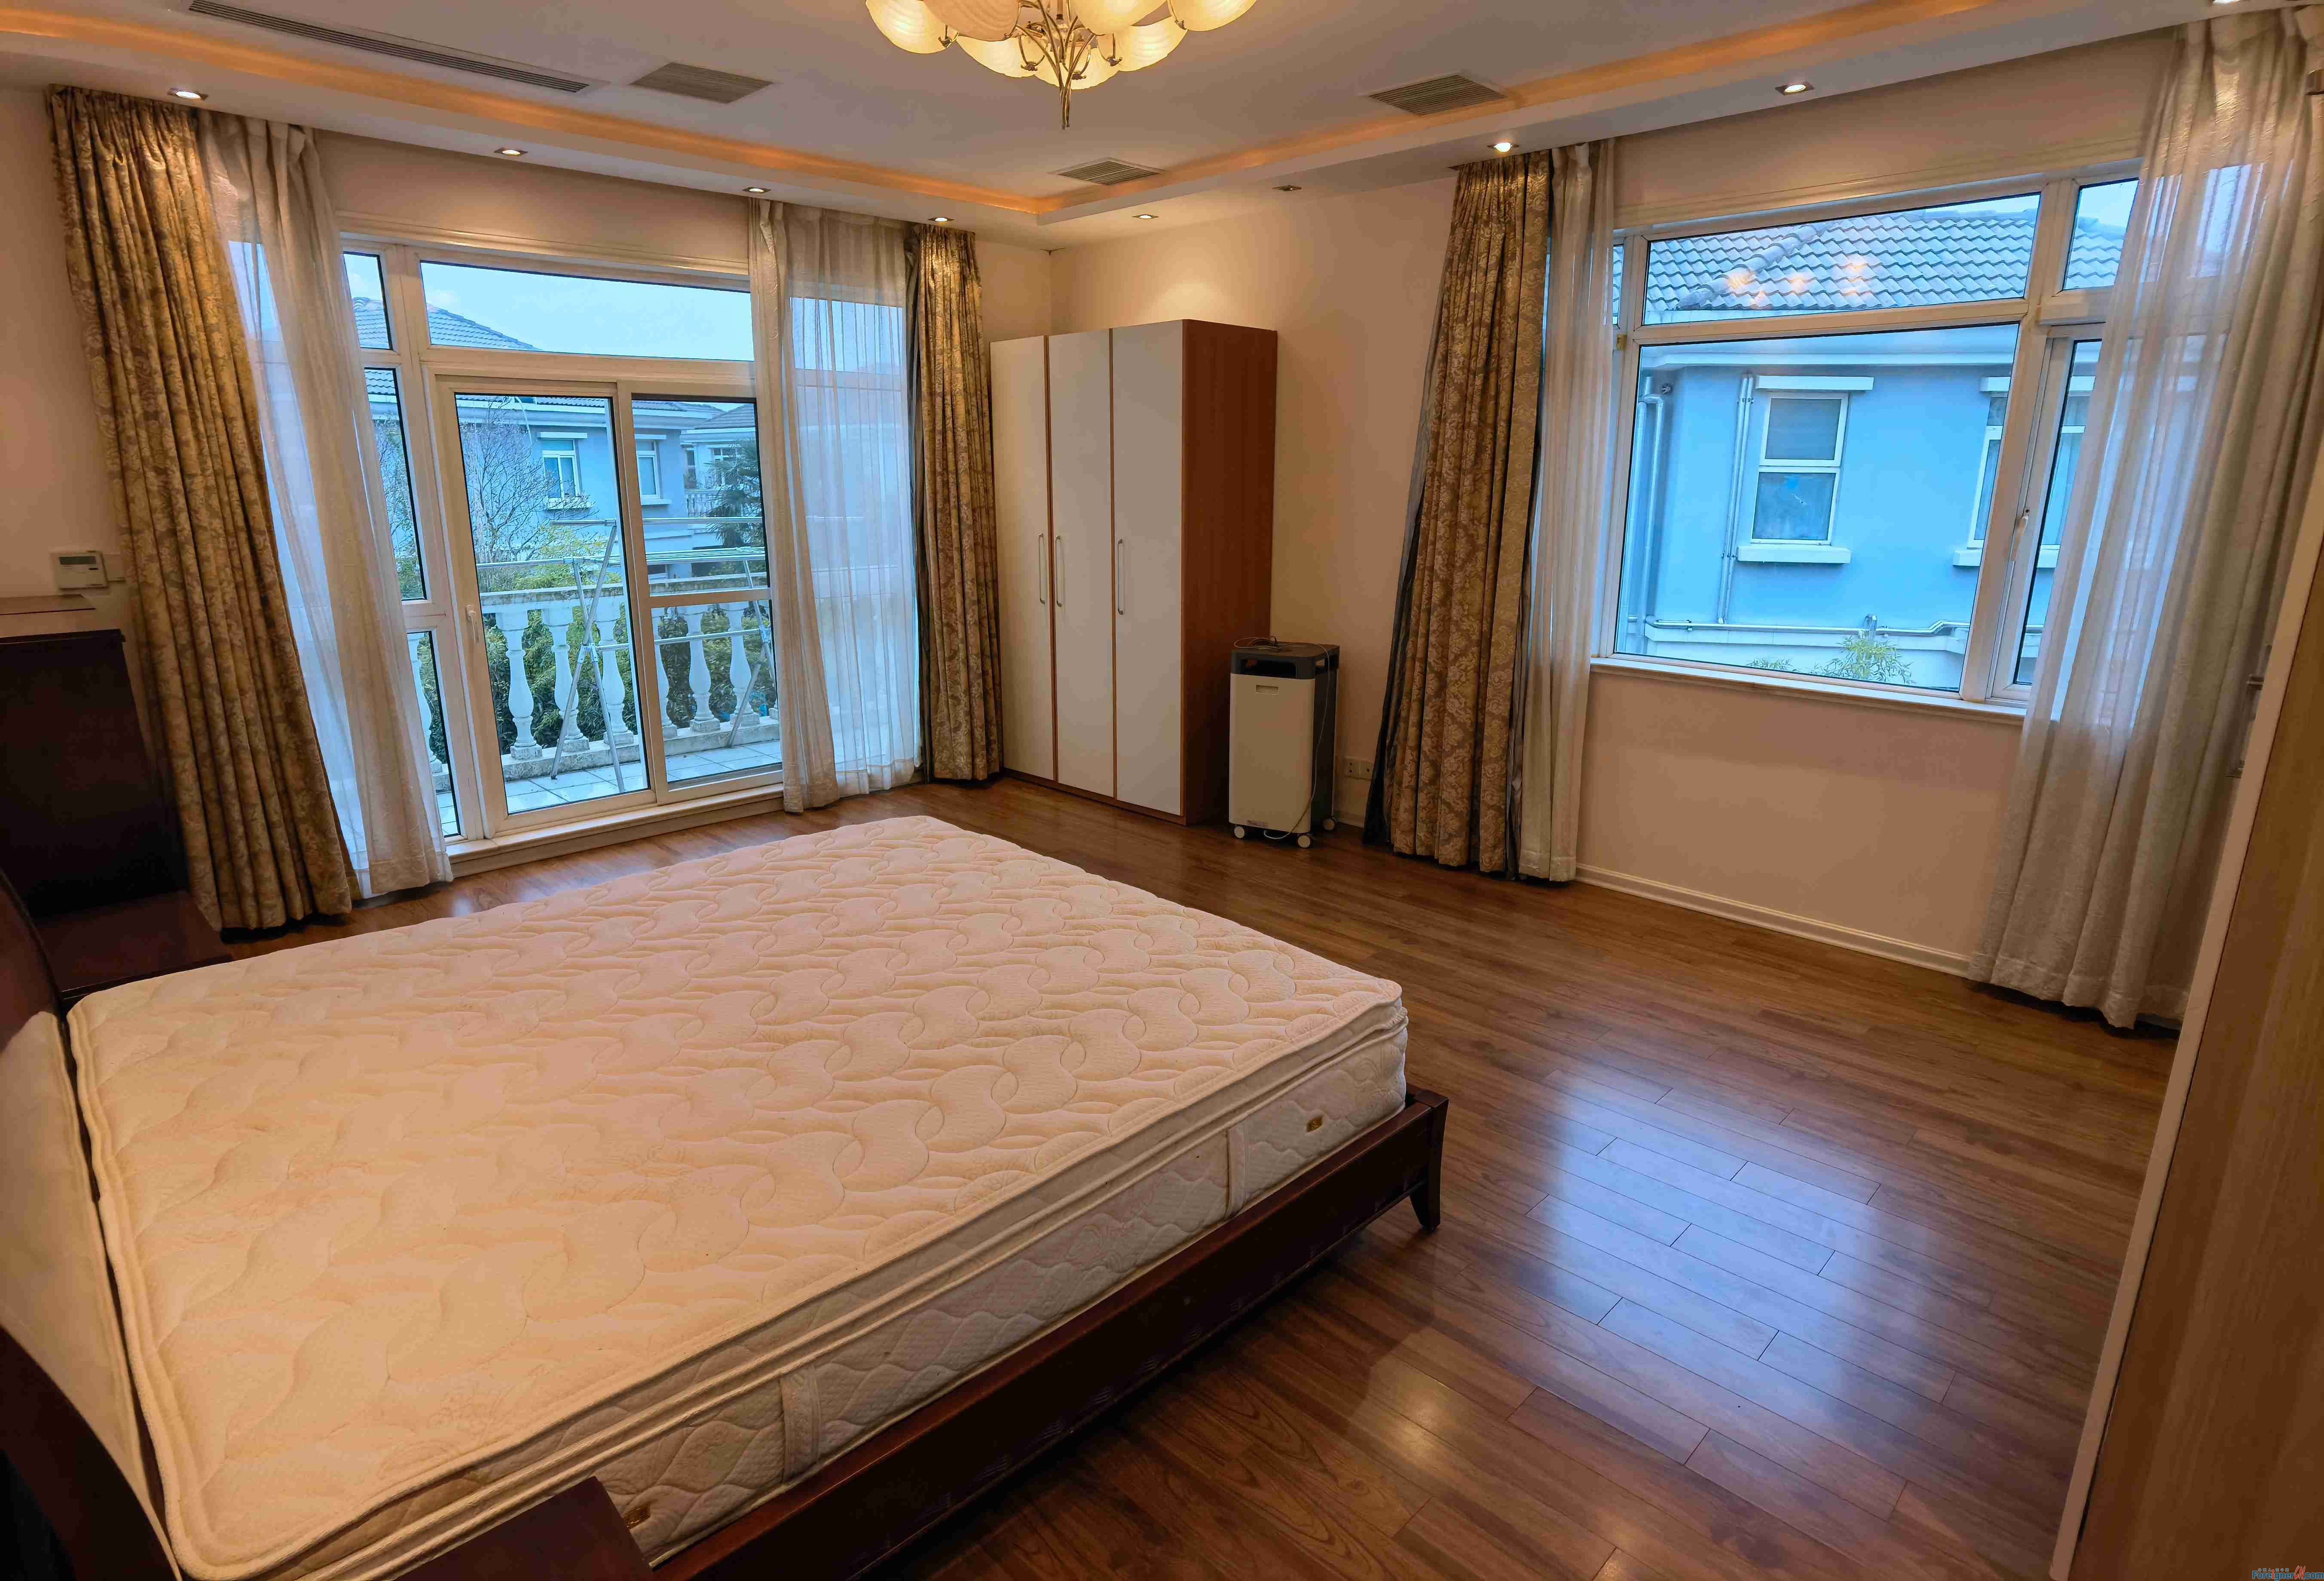 Magnificient!!Lan Yun Yuan (Furong Road) /6 bdr and 3 bath; 300sqm/ with 150sqm yard; floor heating; new decoration /Not far away from Ligongdi and Jinji lake